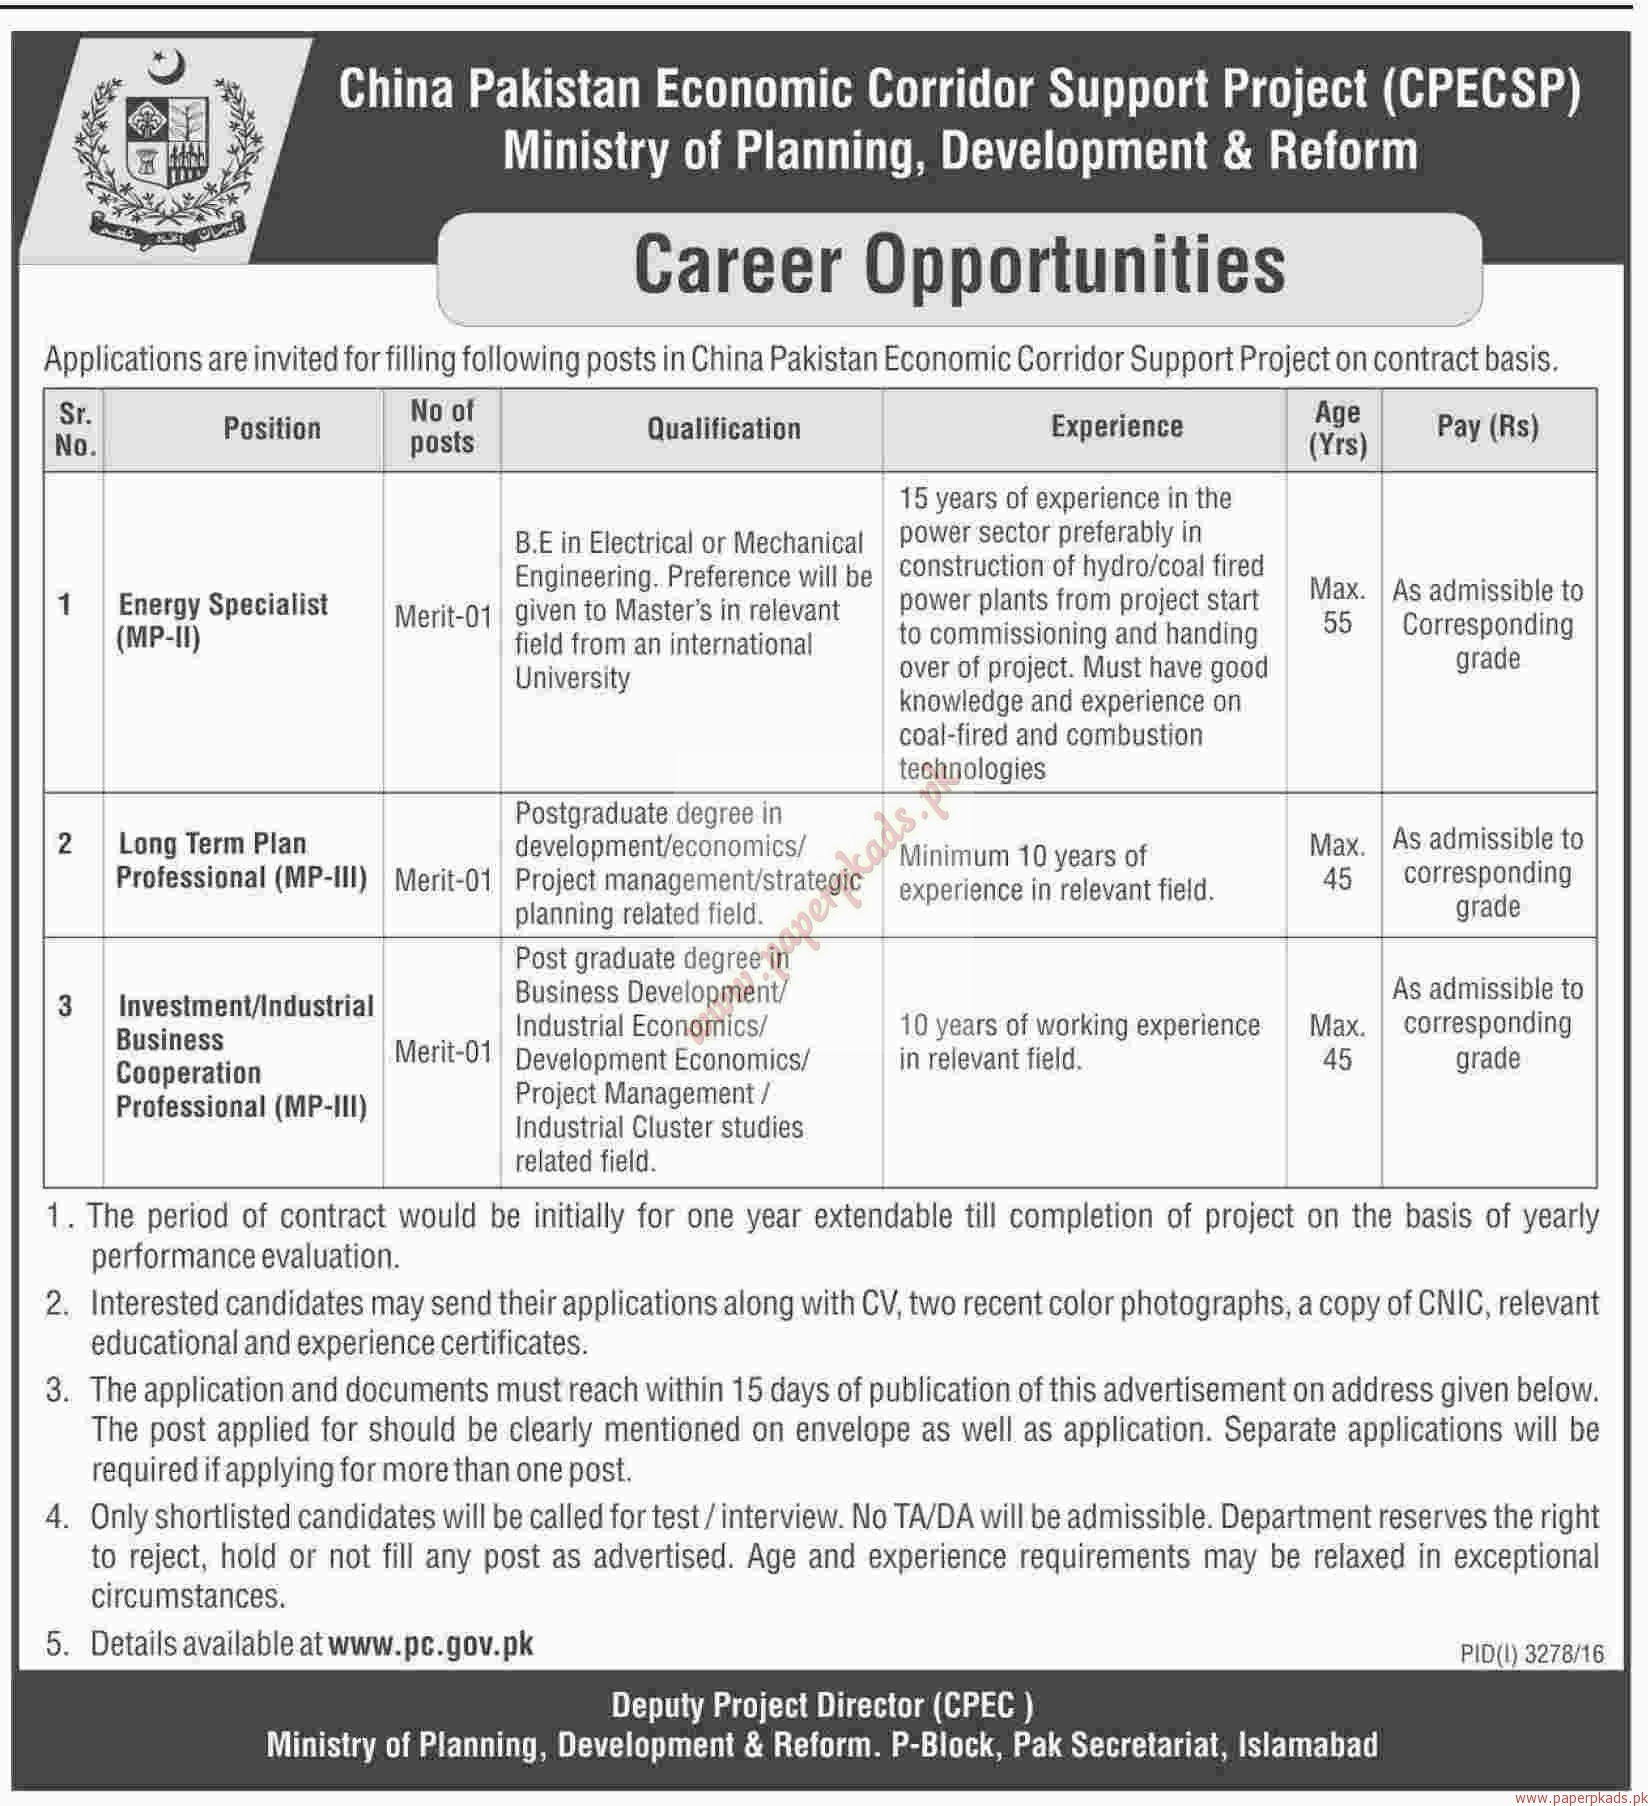 China Pakistan Economic Corridor Support Project Jobs - Dawn Jobs ads 30 December 2016